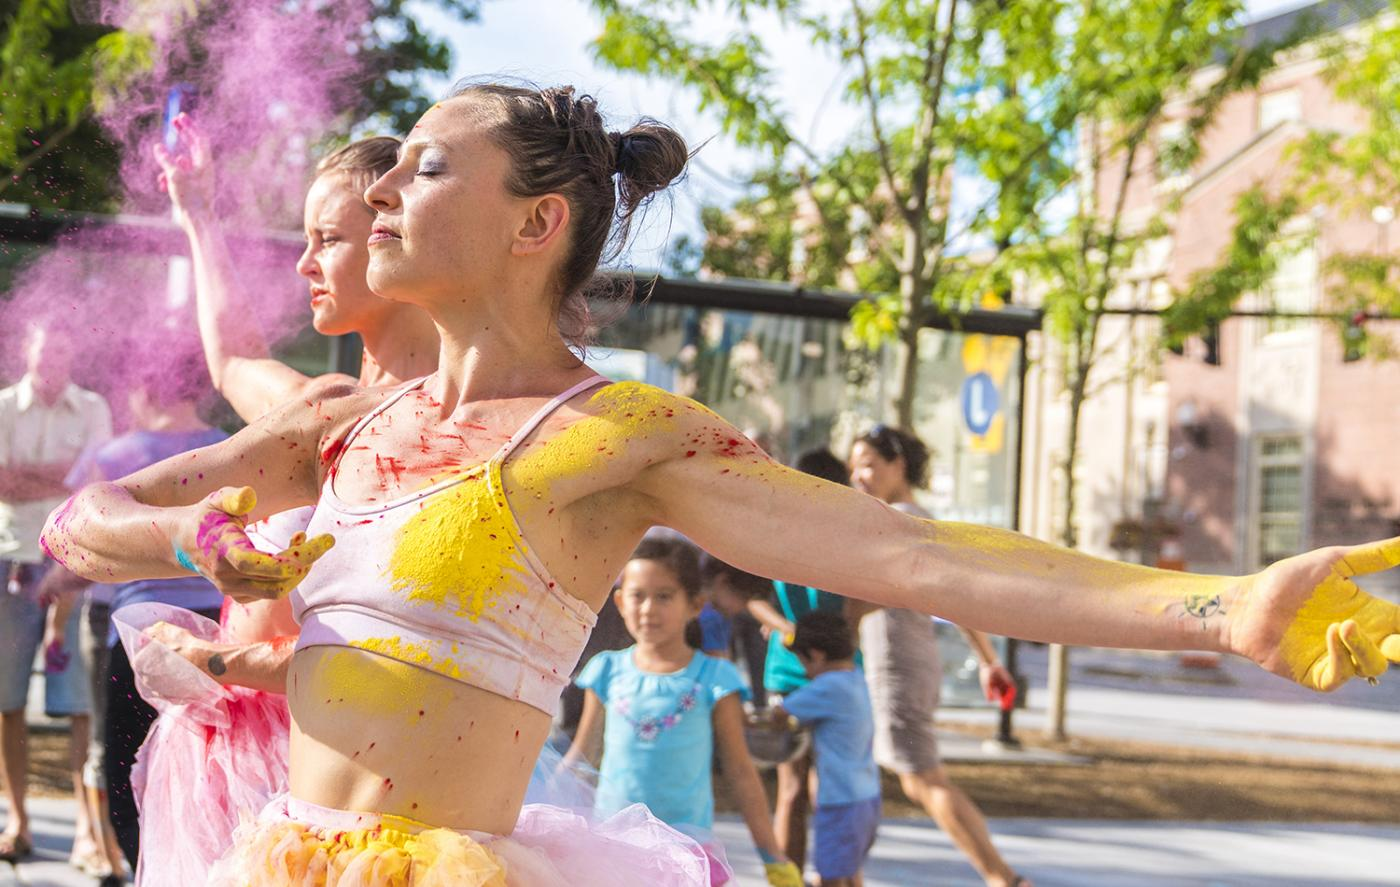 A dancer, in a tutu, on a city street, poses in color burst powder.